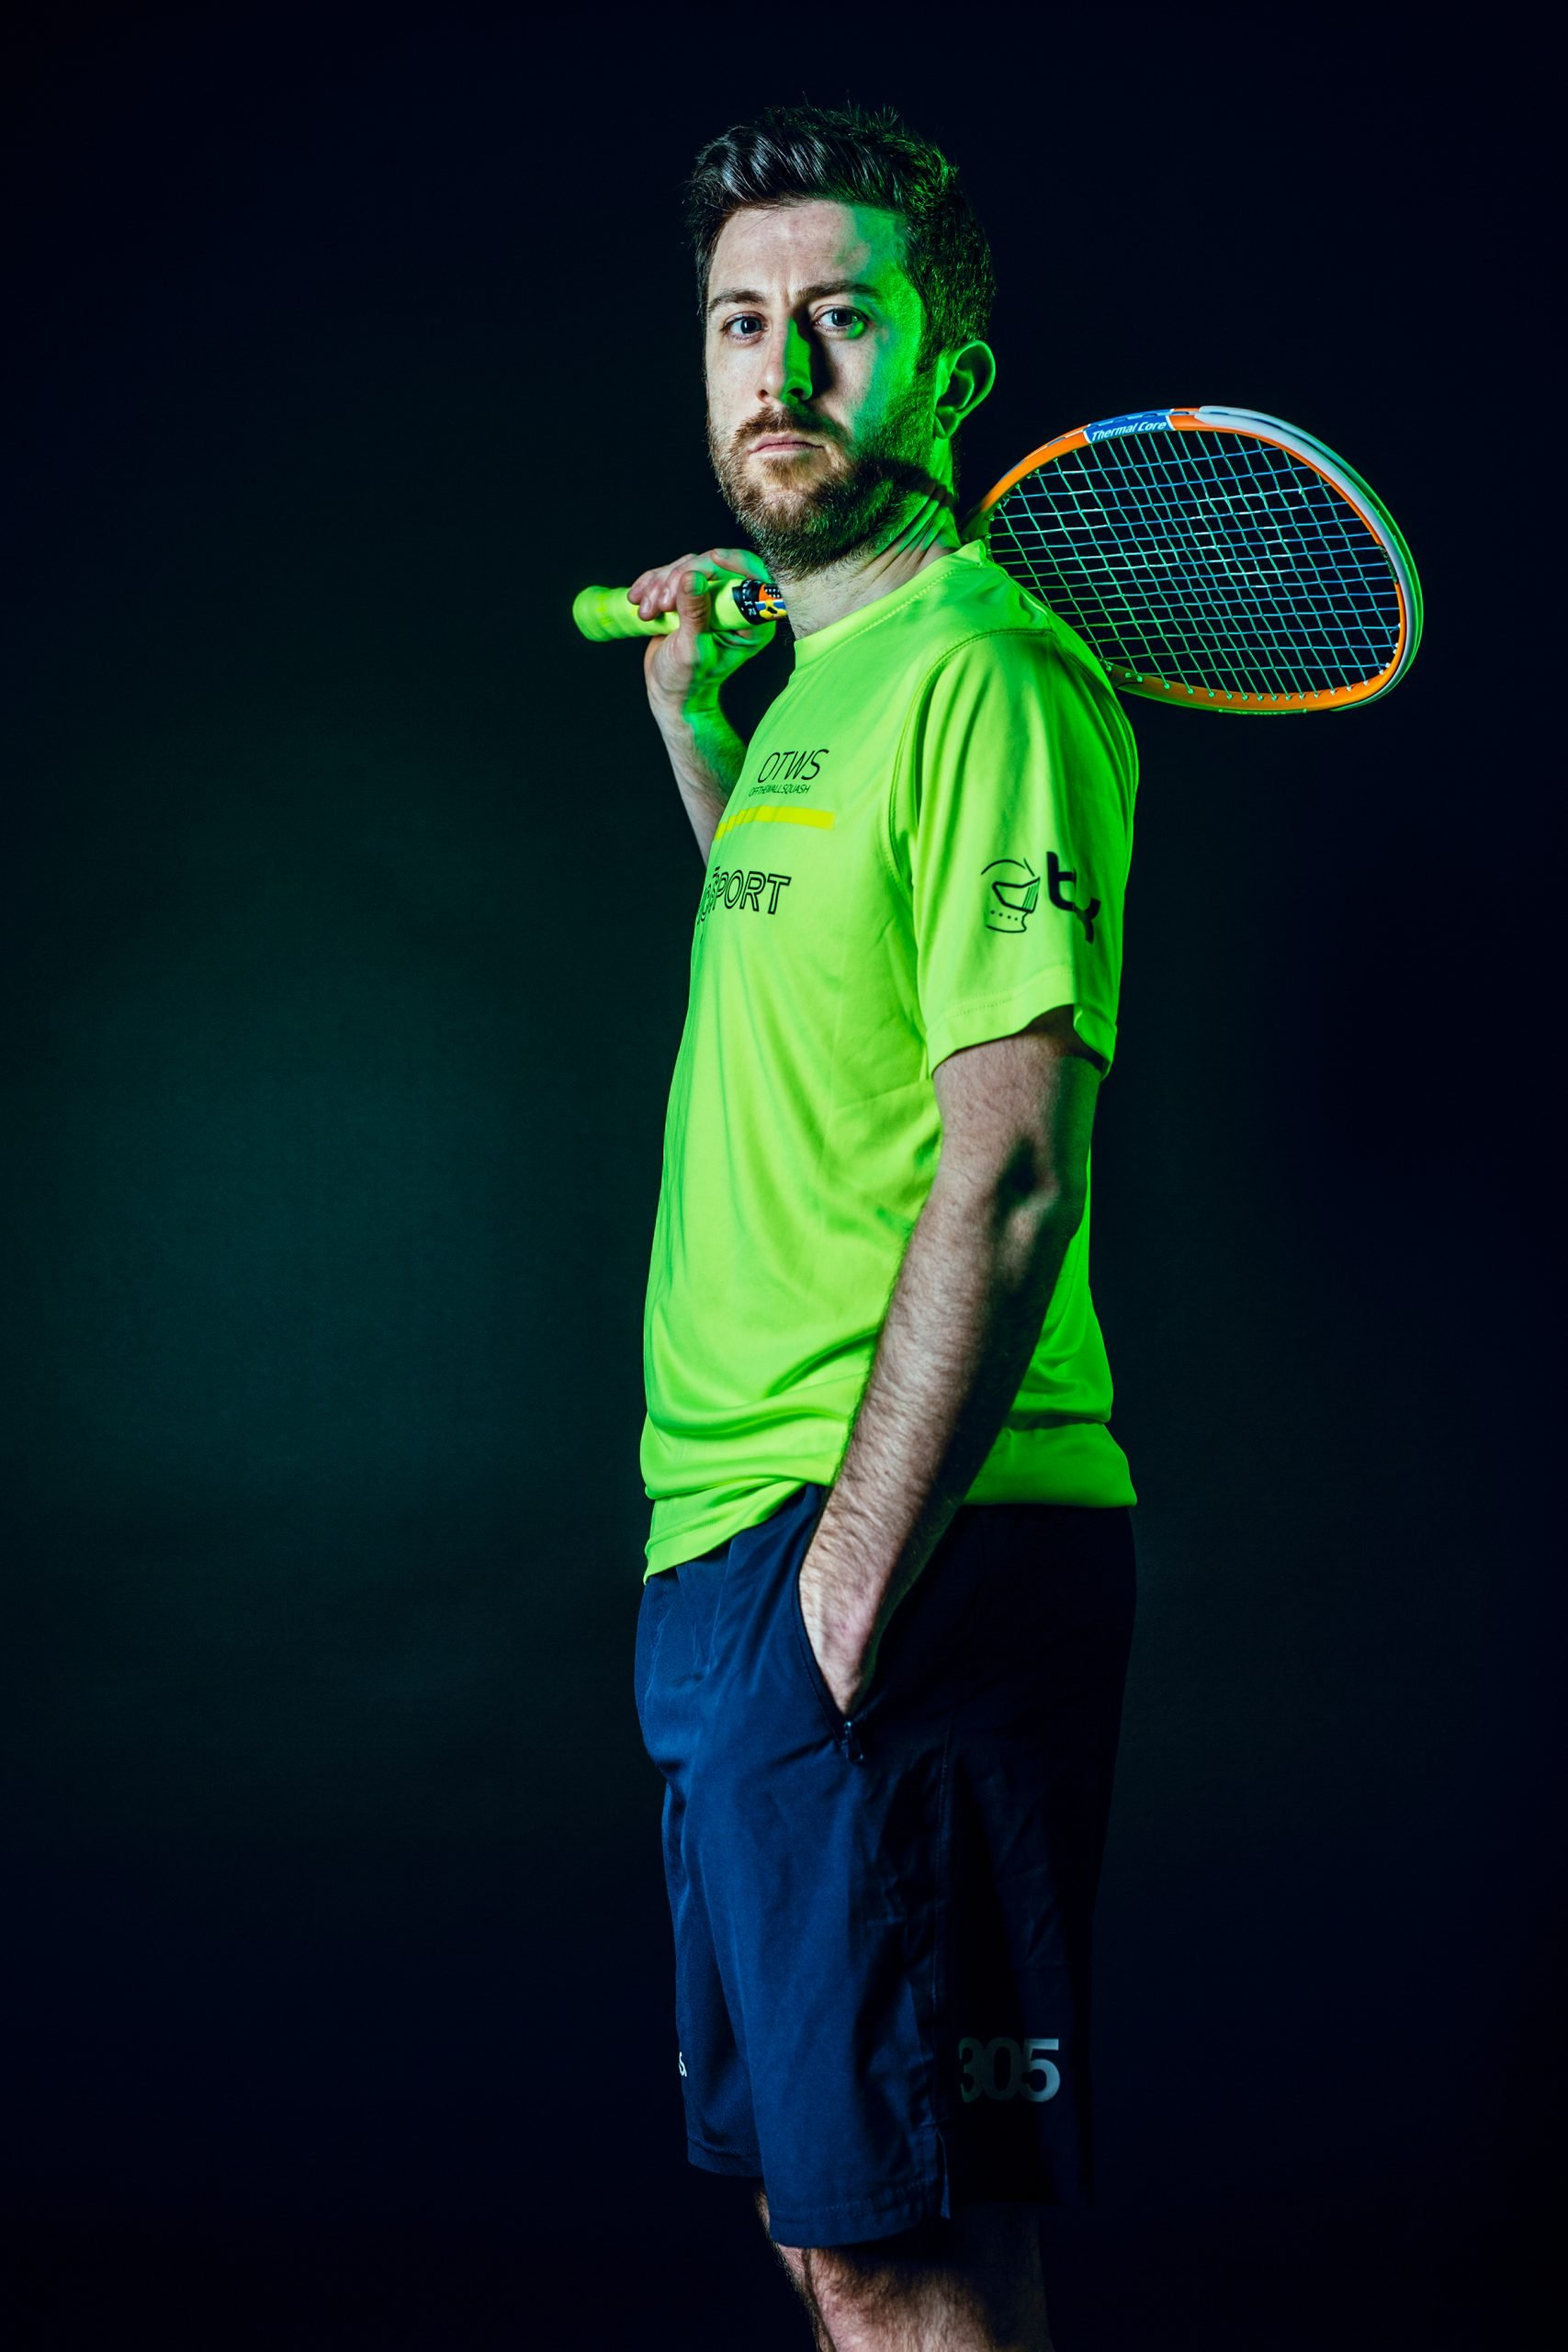 Daryl Selby, professional Squash player and owner Dynamic 7 Sport poses with a Squash racket.